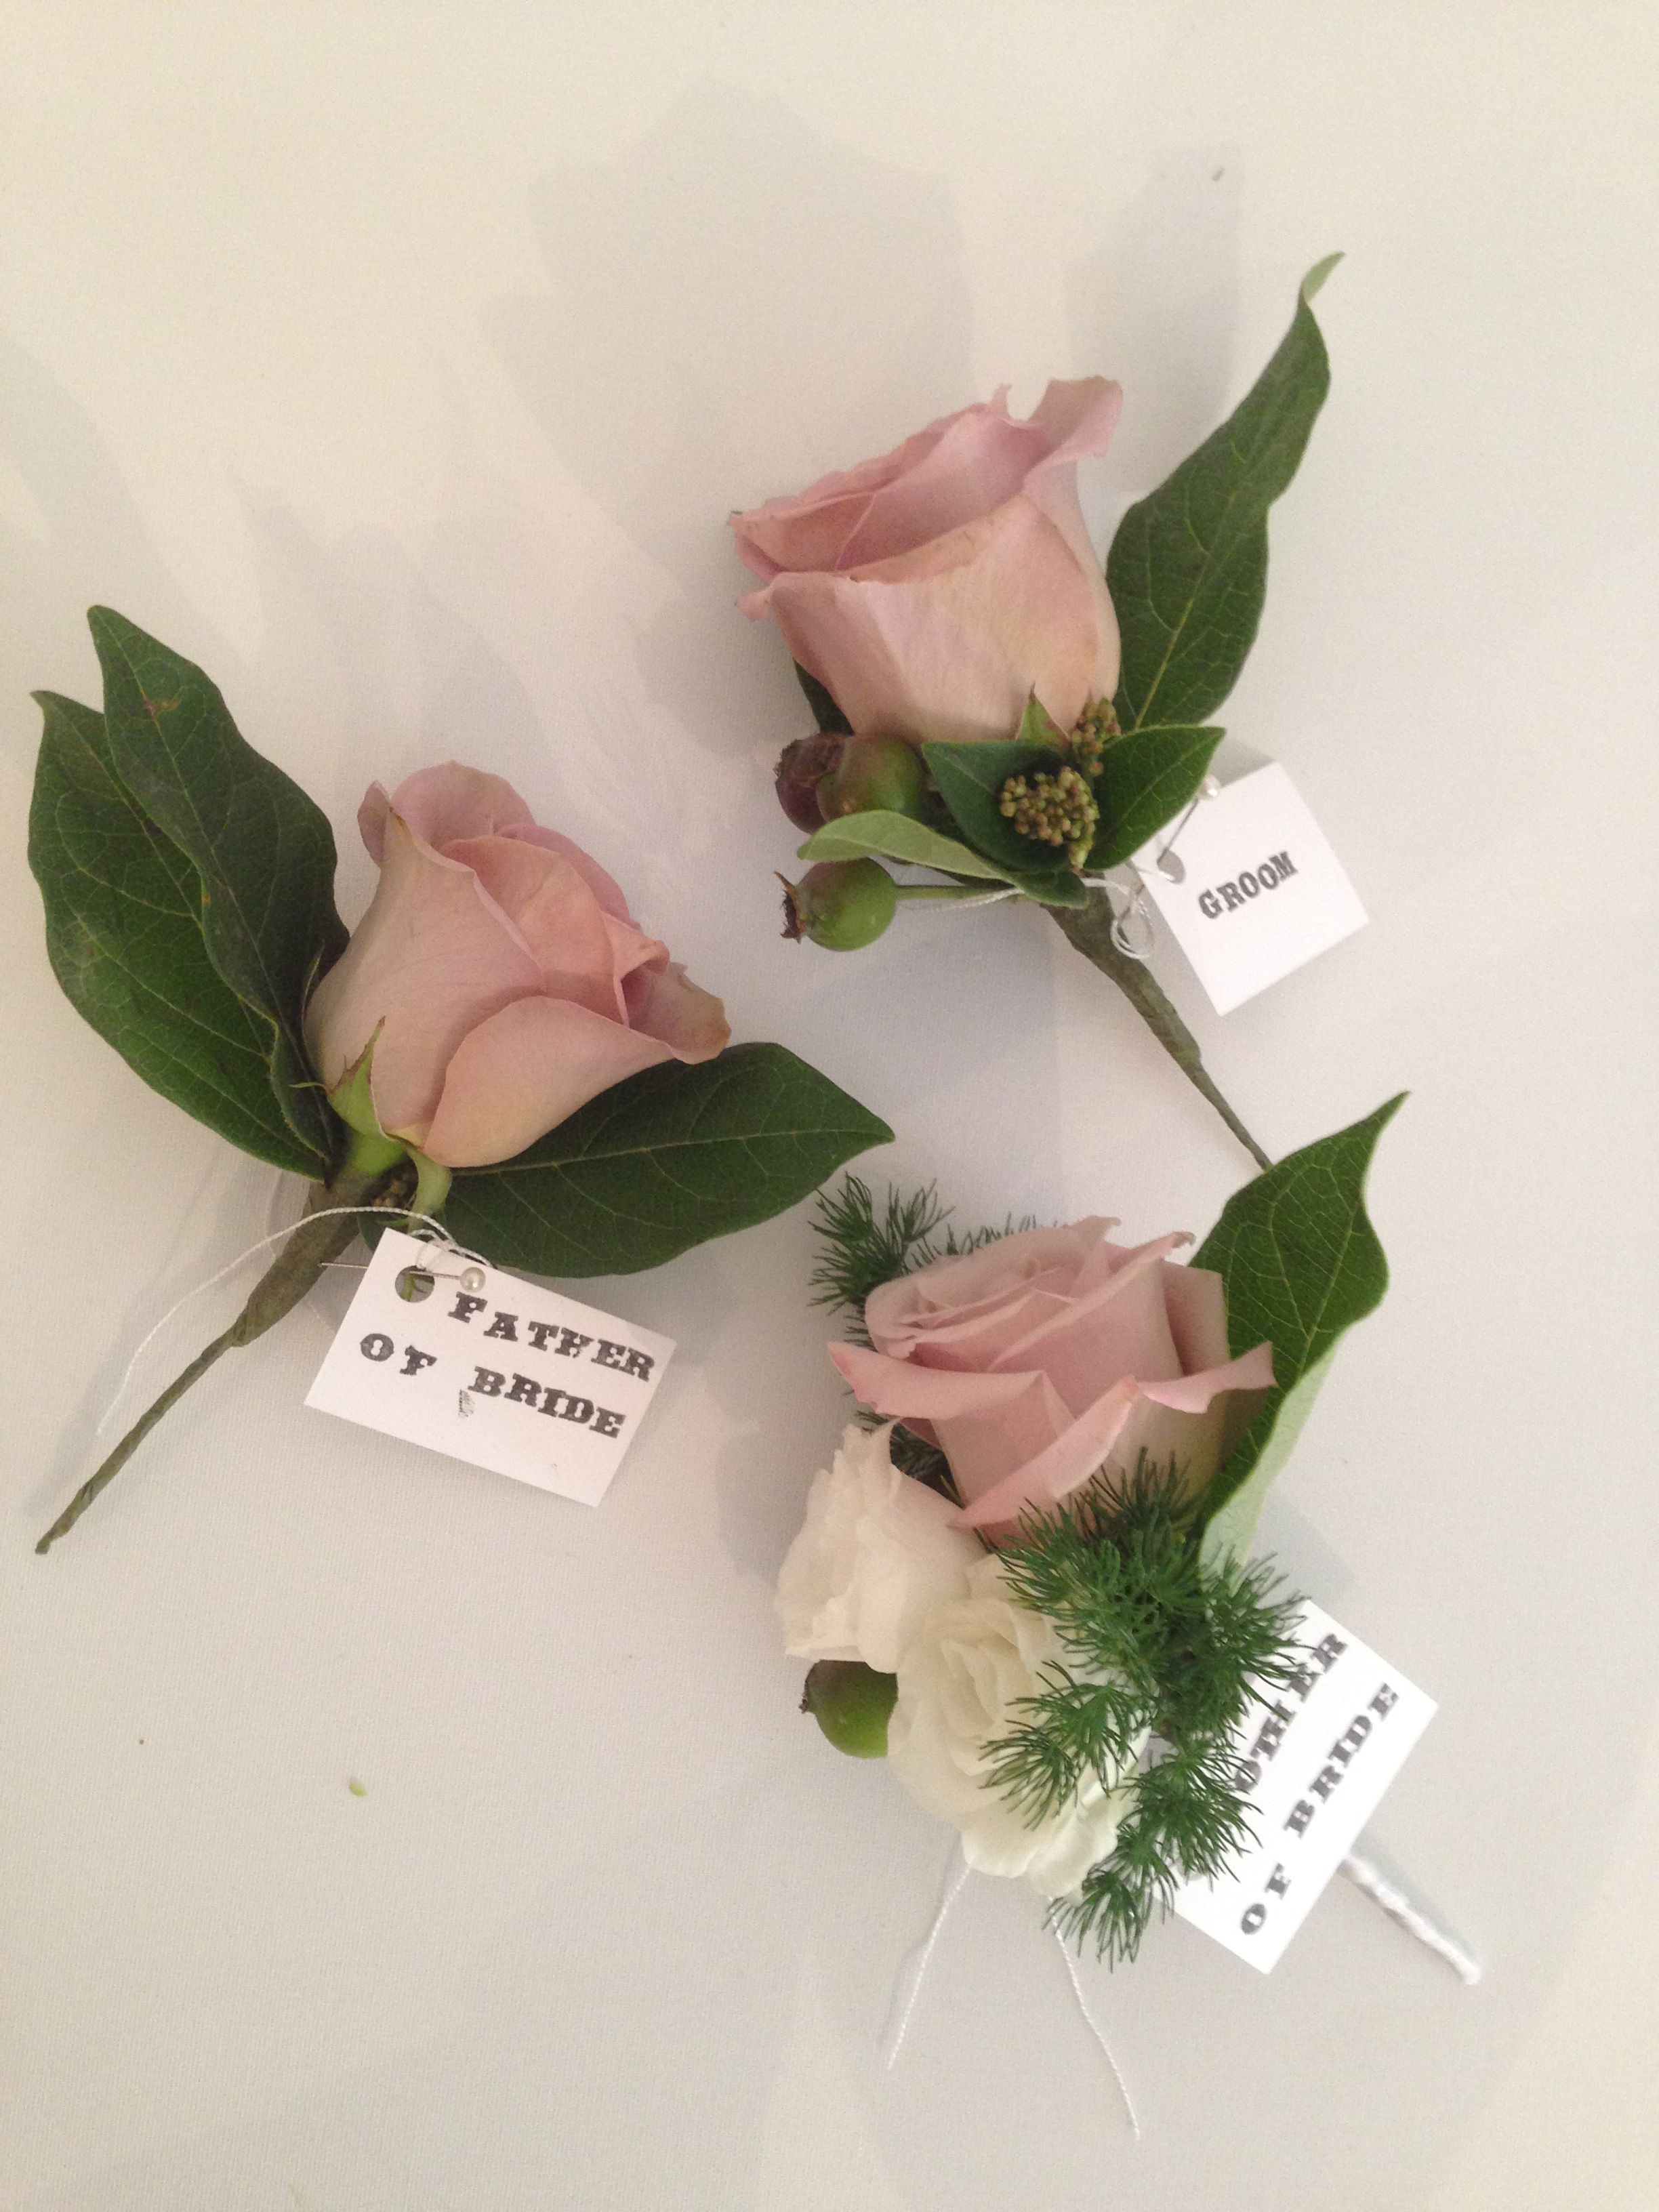 Dusky pink mink coloured rose buttonholes surrey wedding flowers dusky pink mink coloured rose buttonholes surrey wedding flowers by boutique blooms floral design mightylinksfo